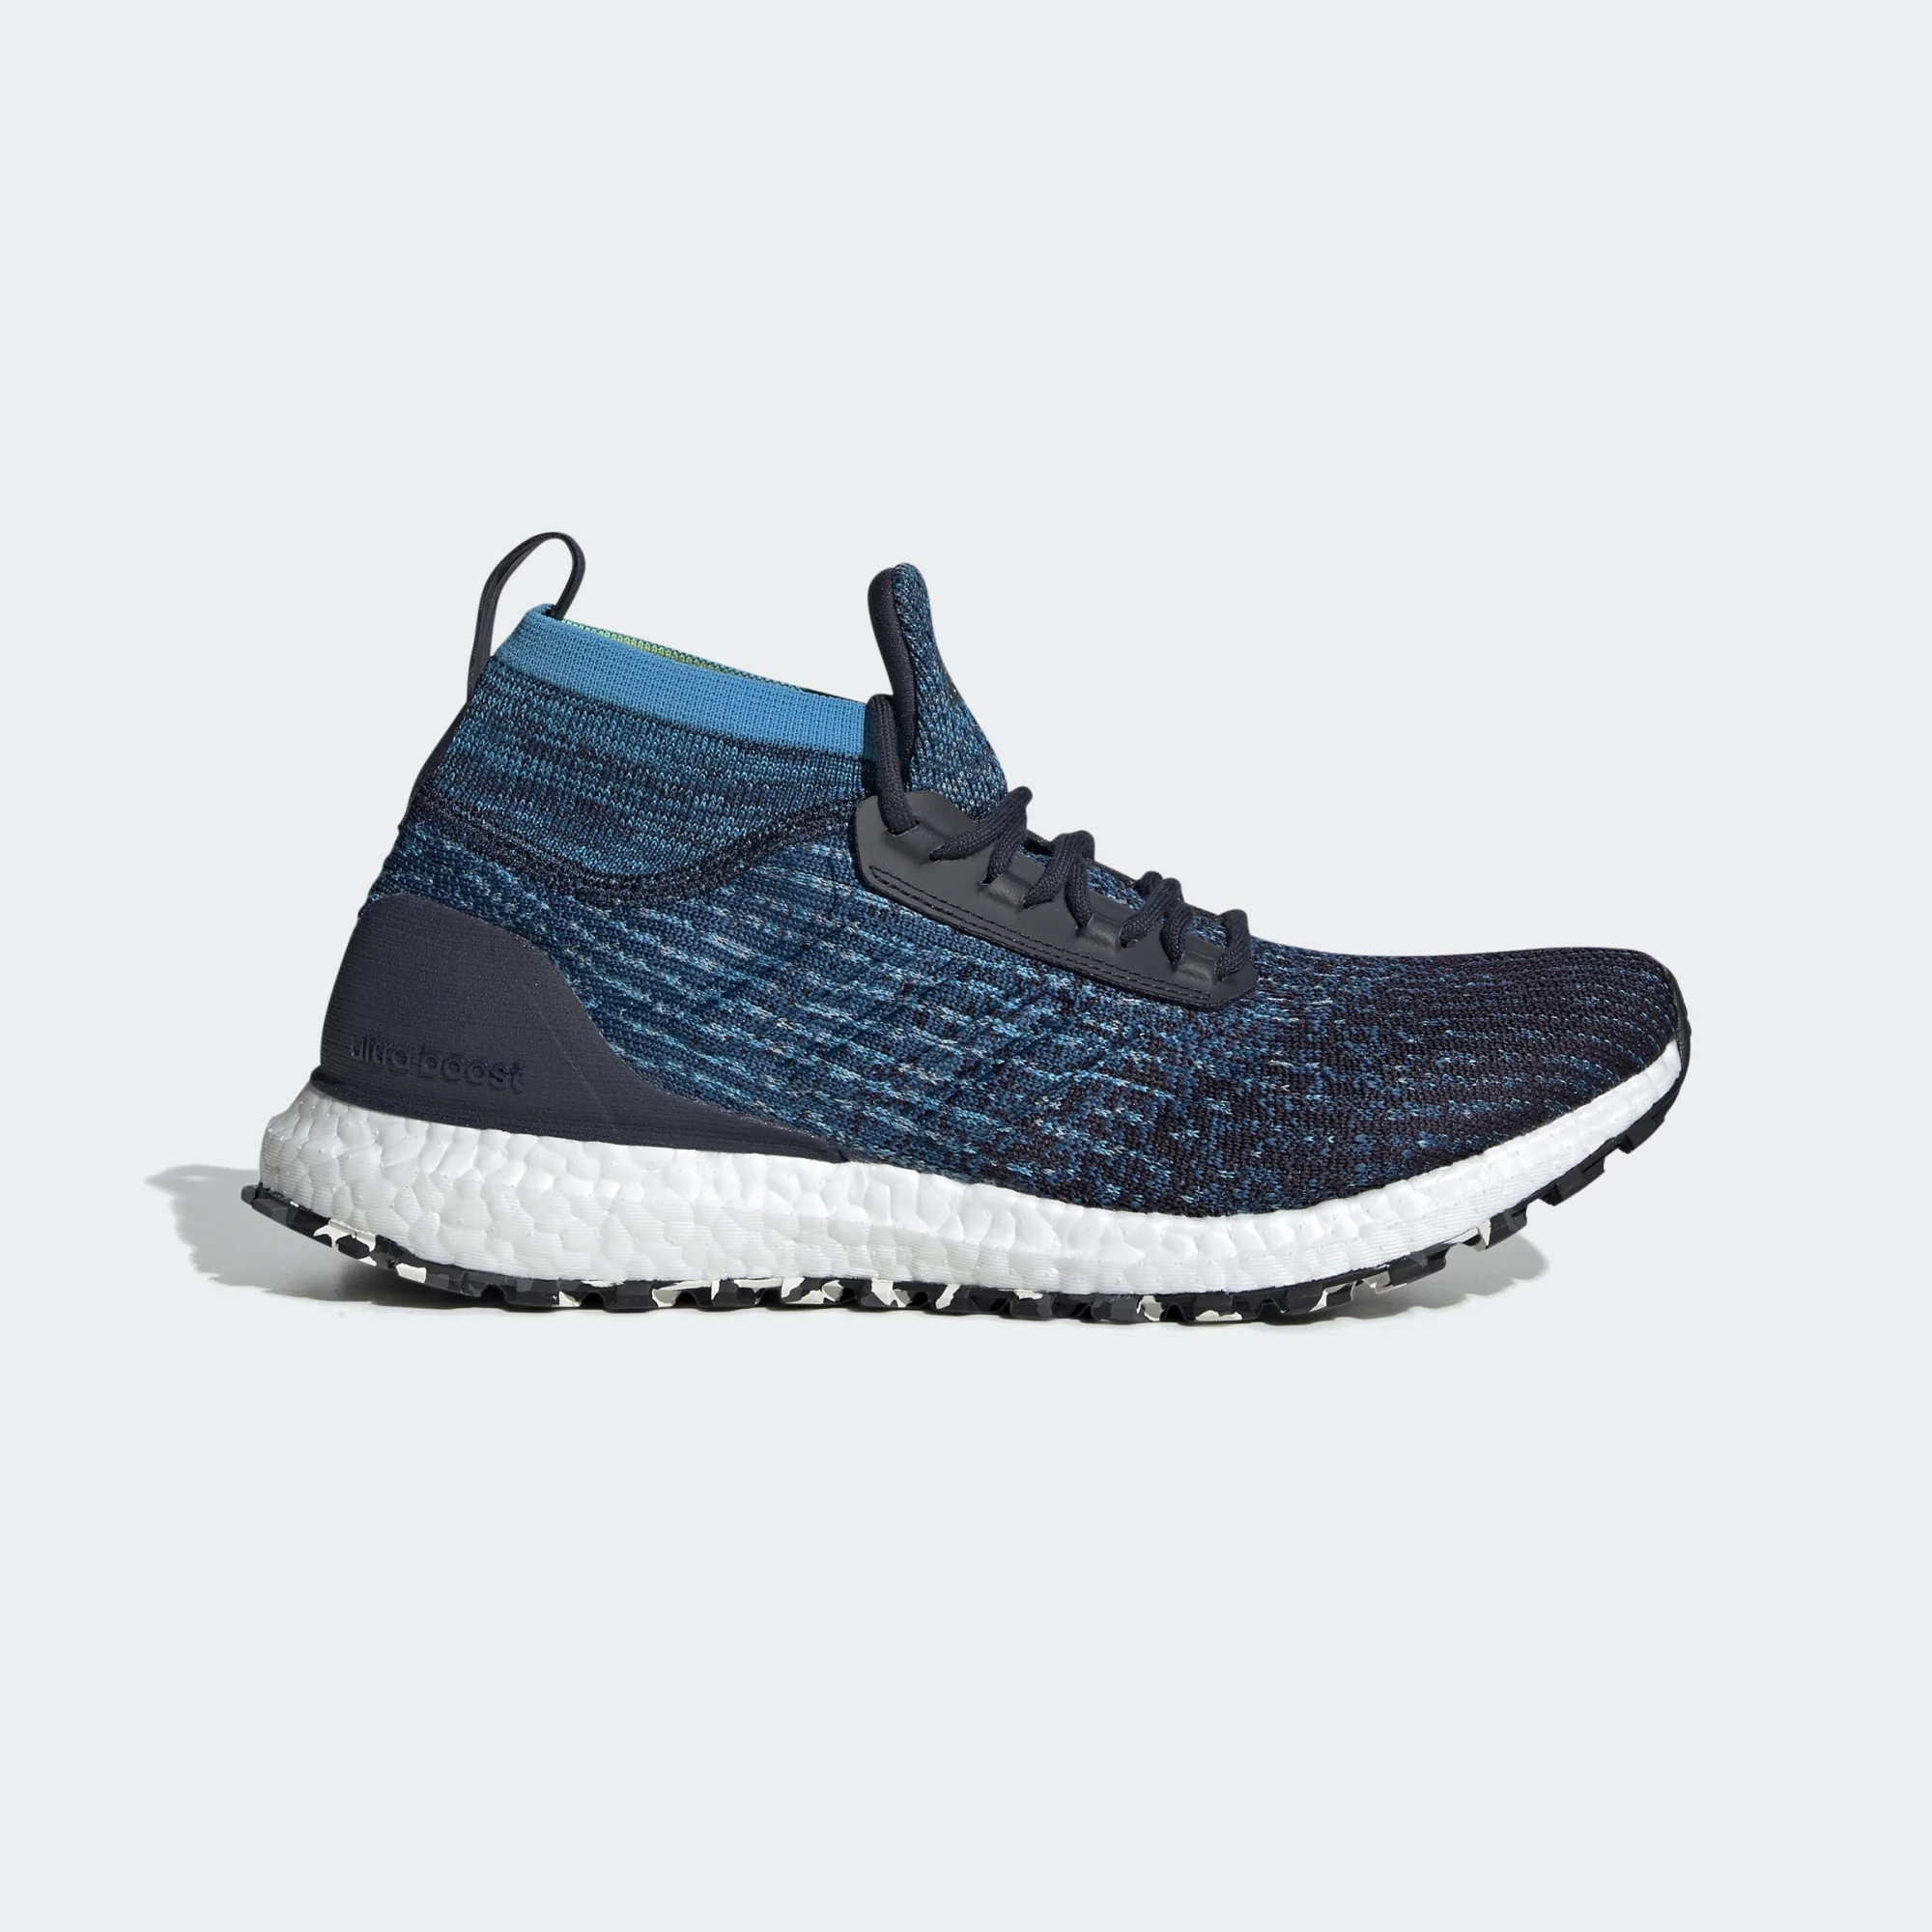 adidas Originals Ultra Boost All Terrain Blue Sneakers B37698